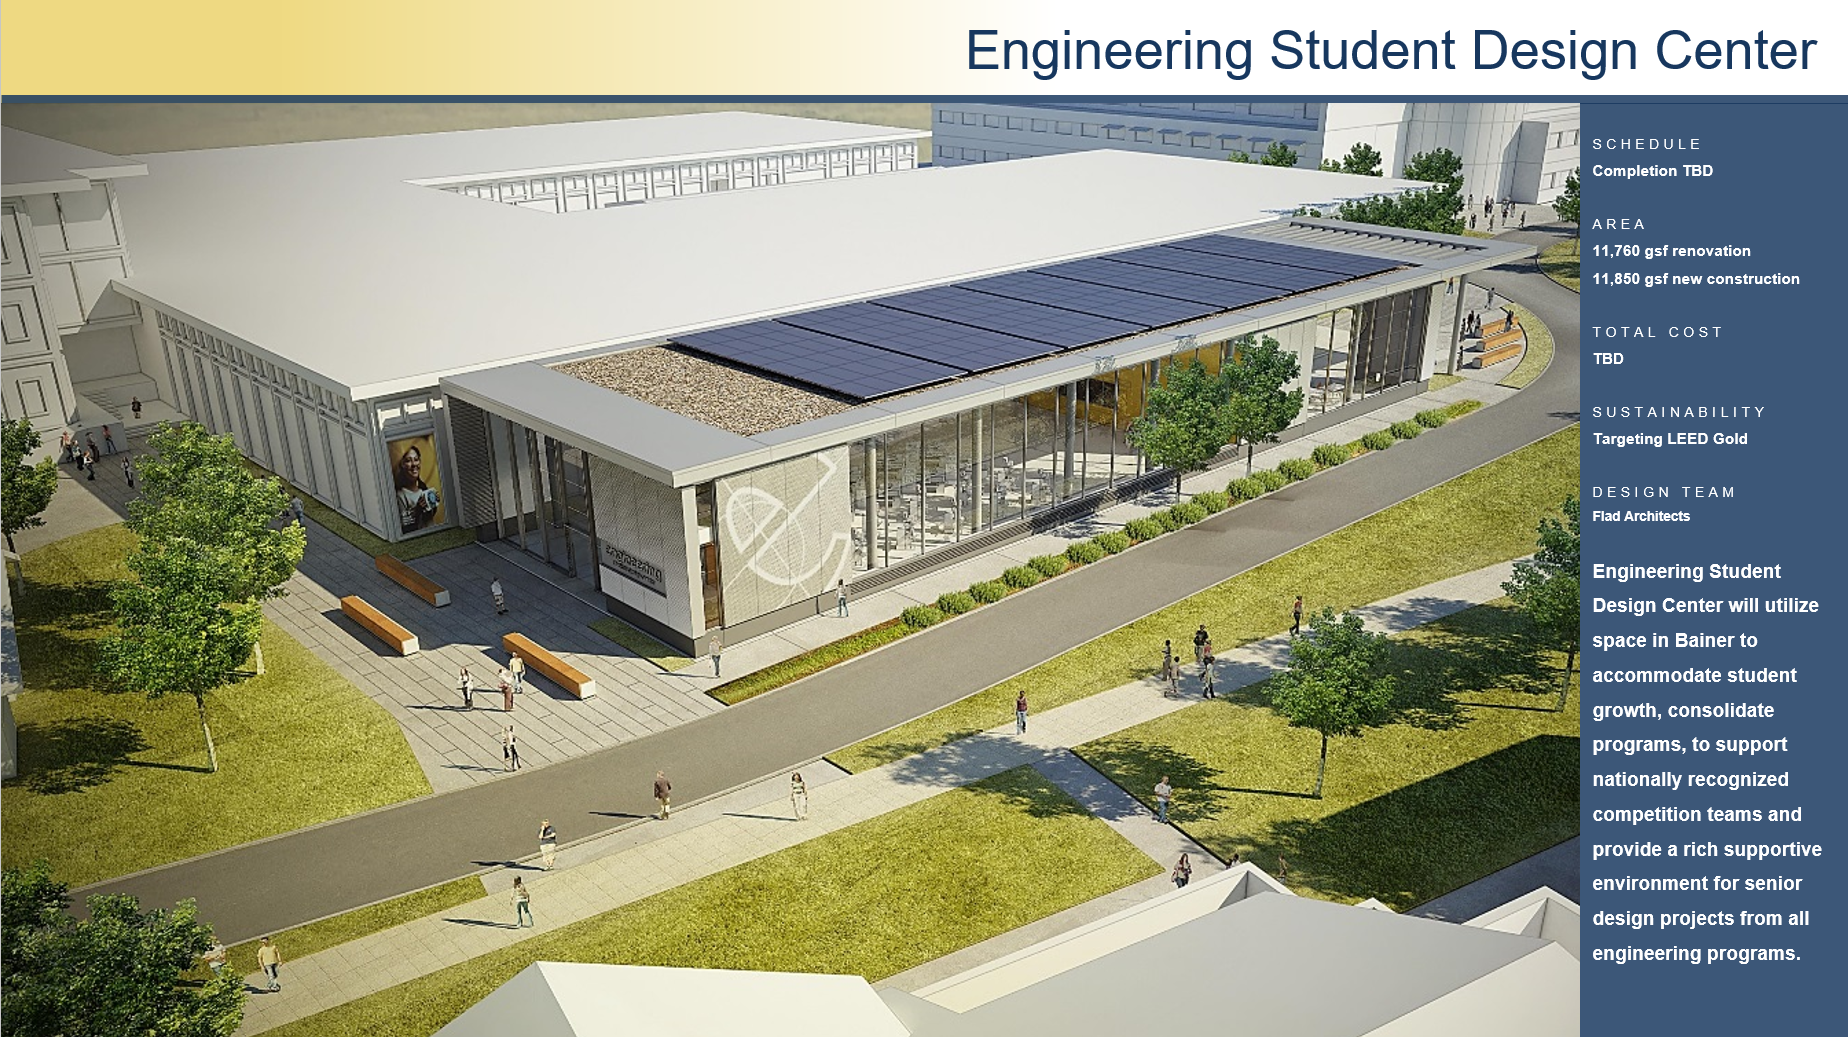 Engineering Student Design Center